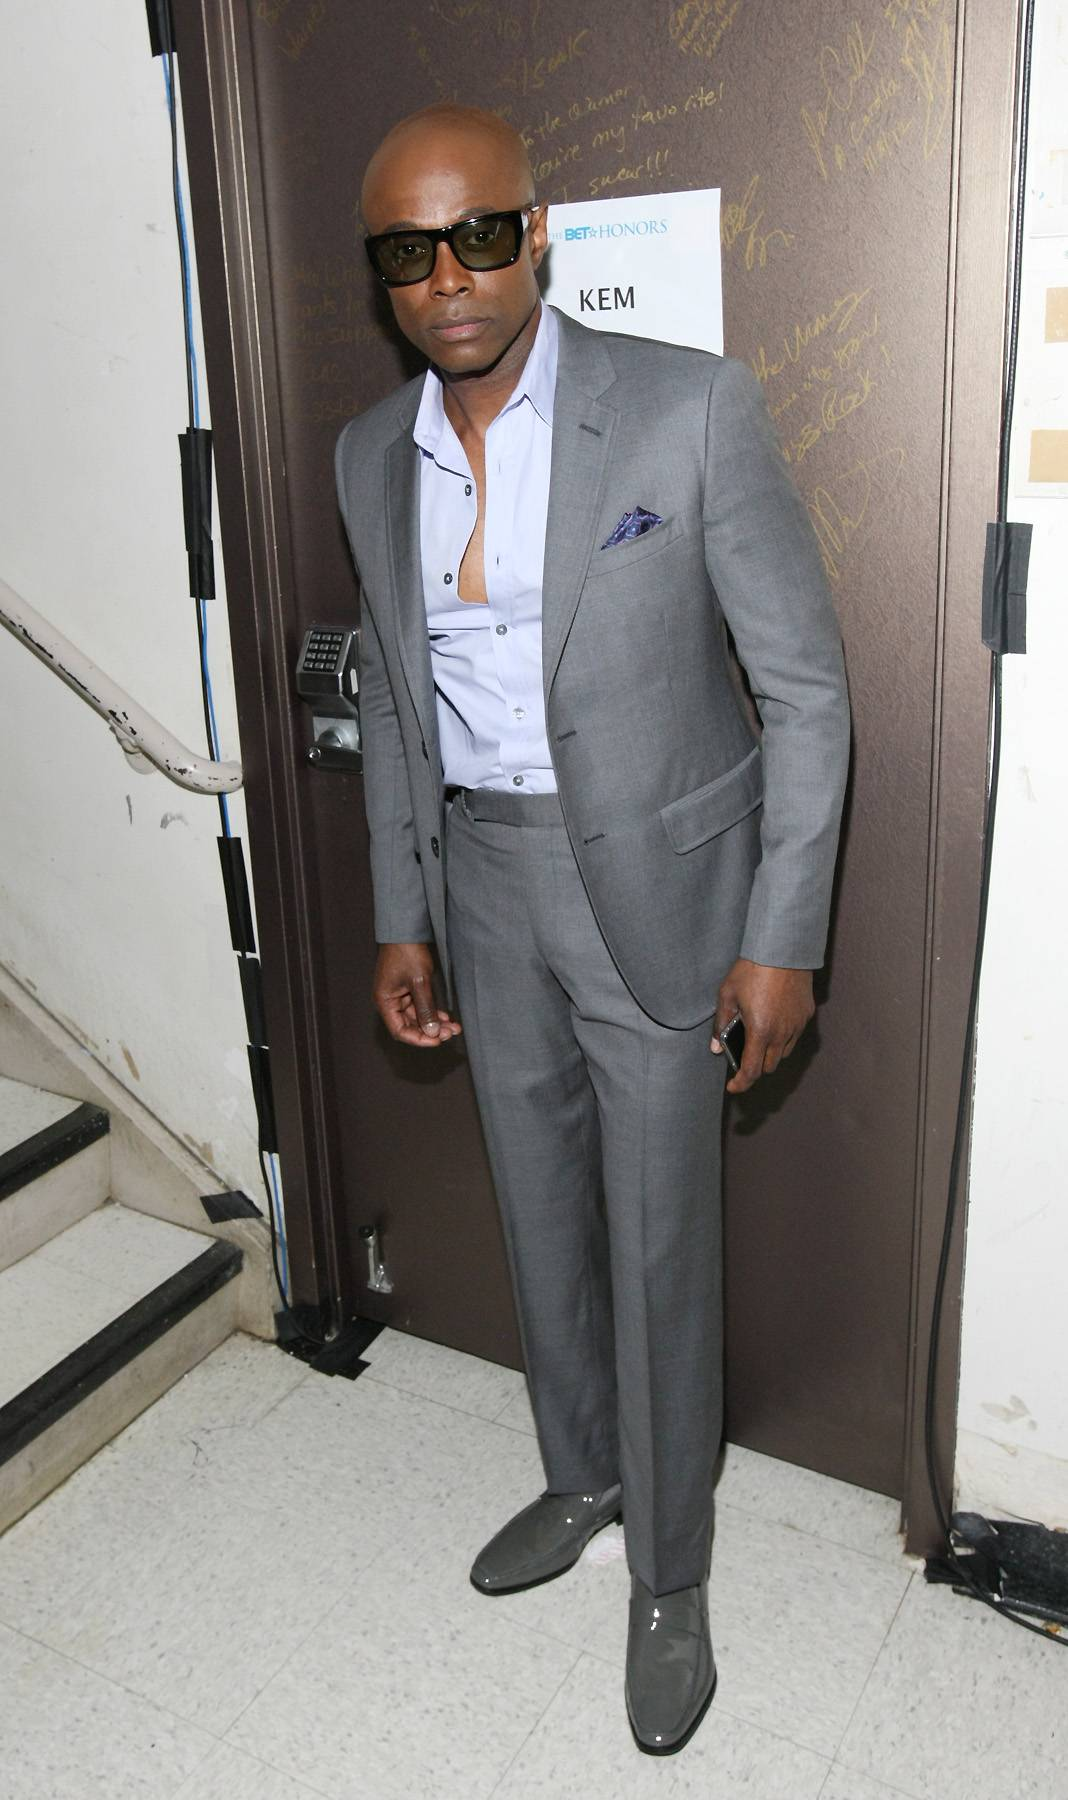 Comfortable in Grey - KEM kept things cool in his grey attire. The matching shoes help add another layer of fresh to this suit.  (Photo: GettyImages for BET)